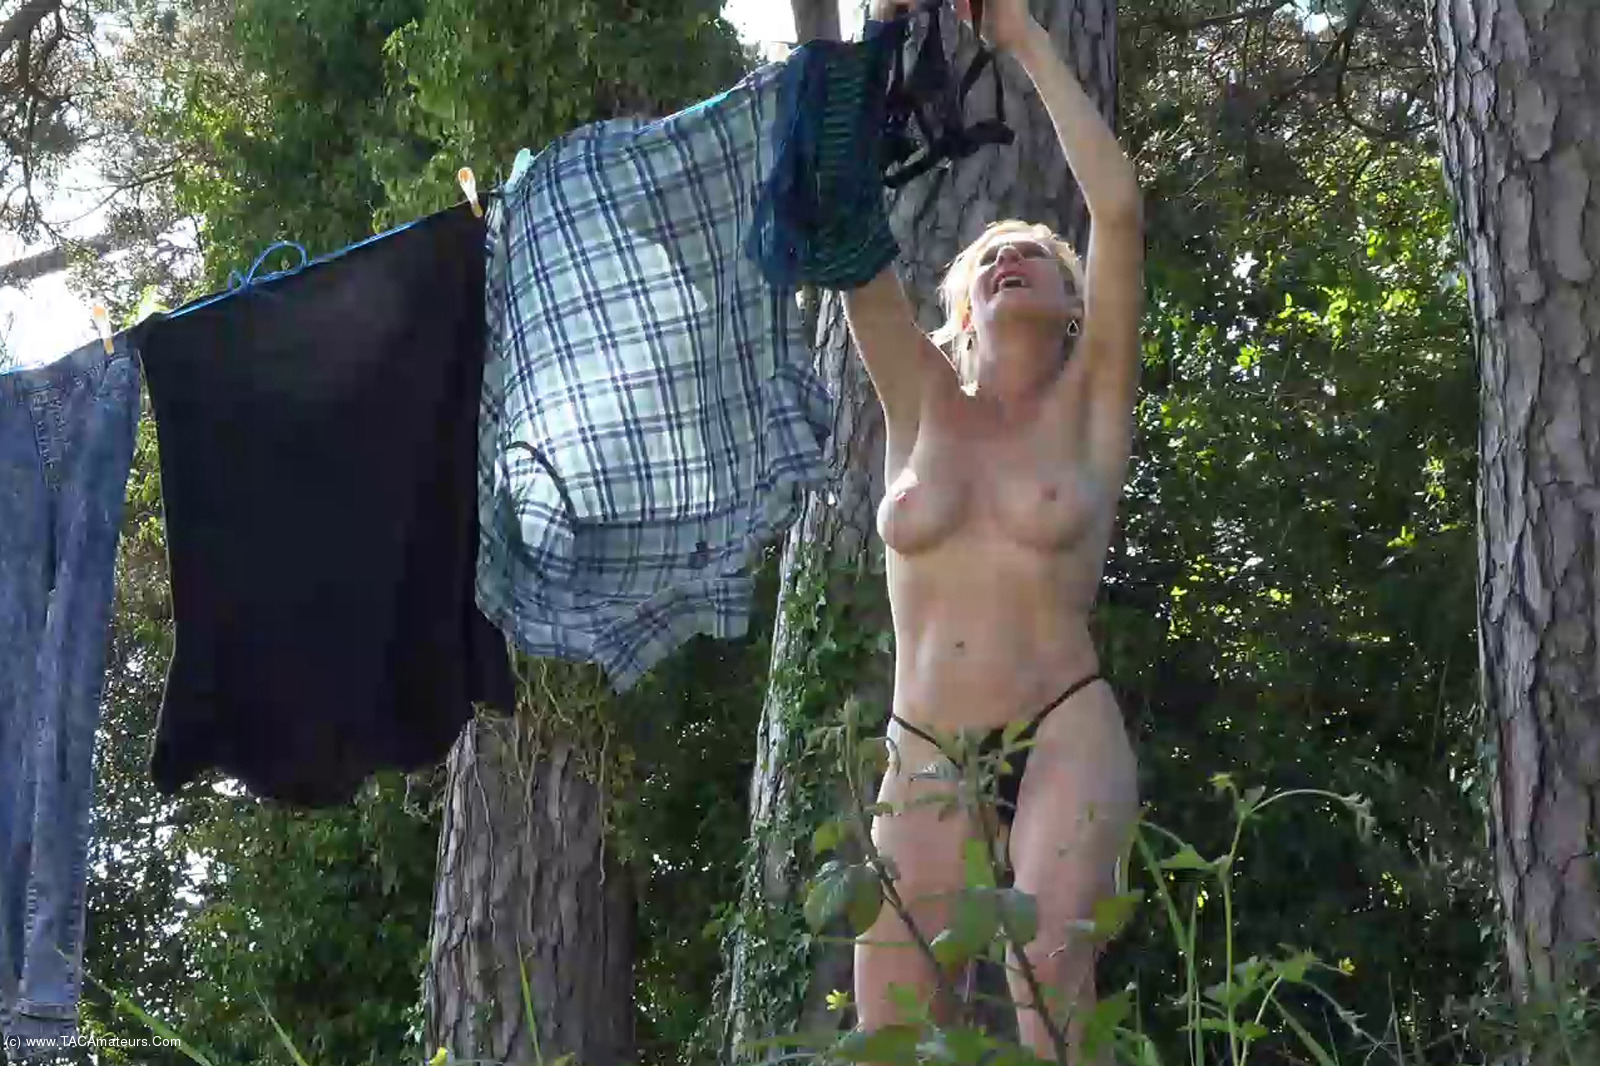 MollyMILF - Hanging Out The Washing scene 2